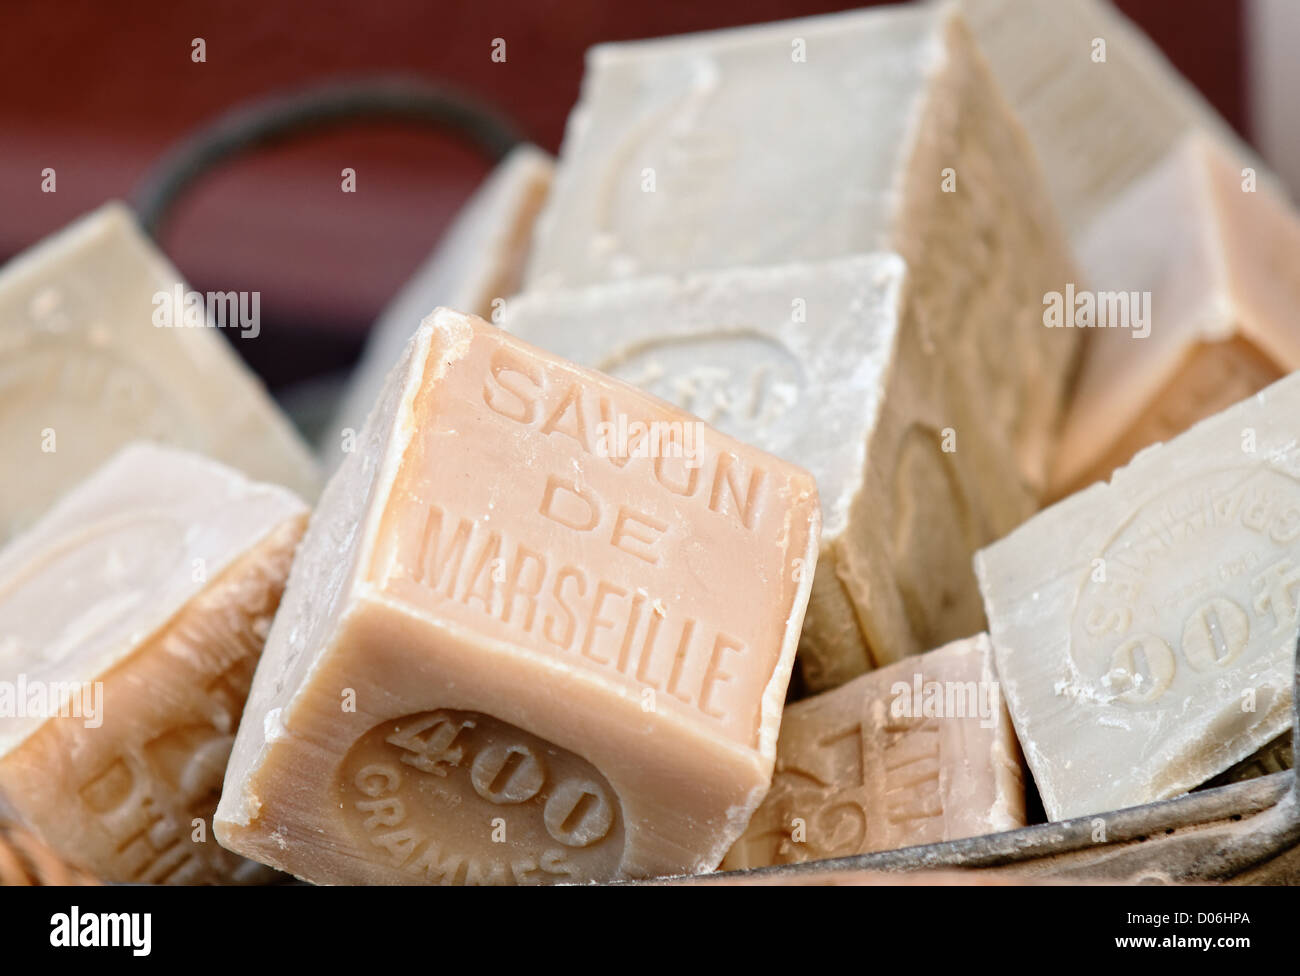 olive oil soaps from Marseille - Stock Image